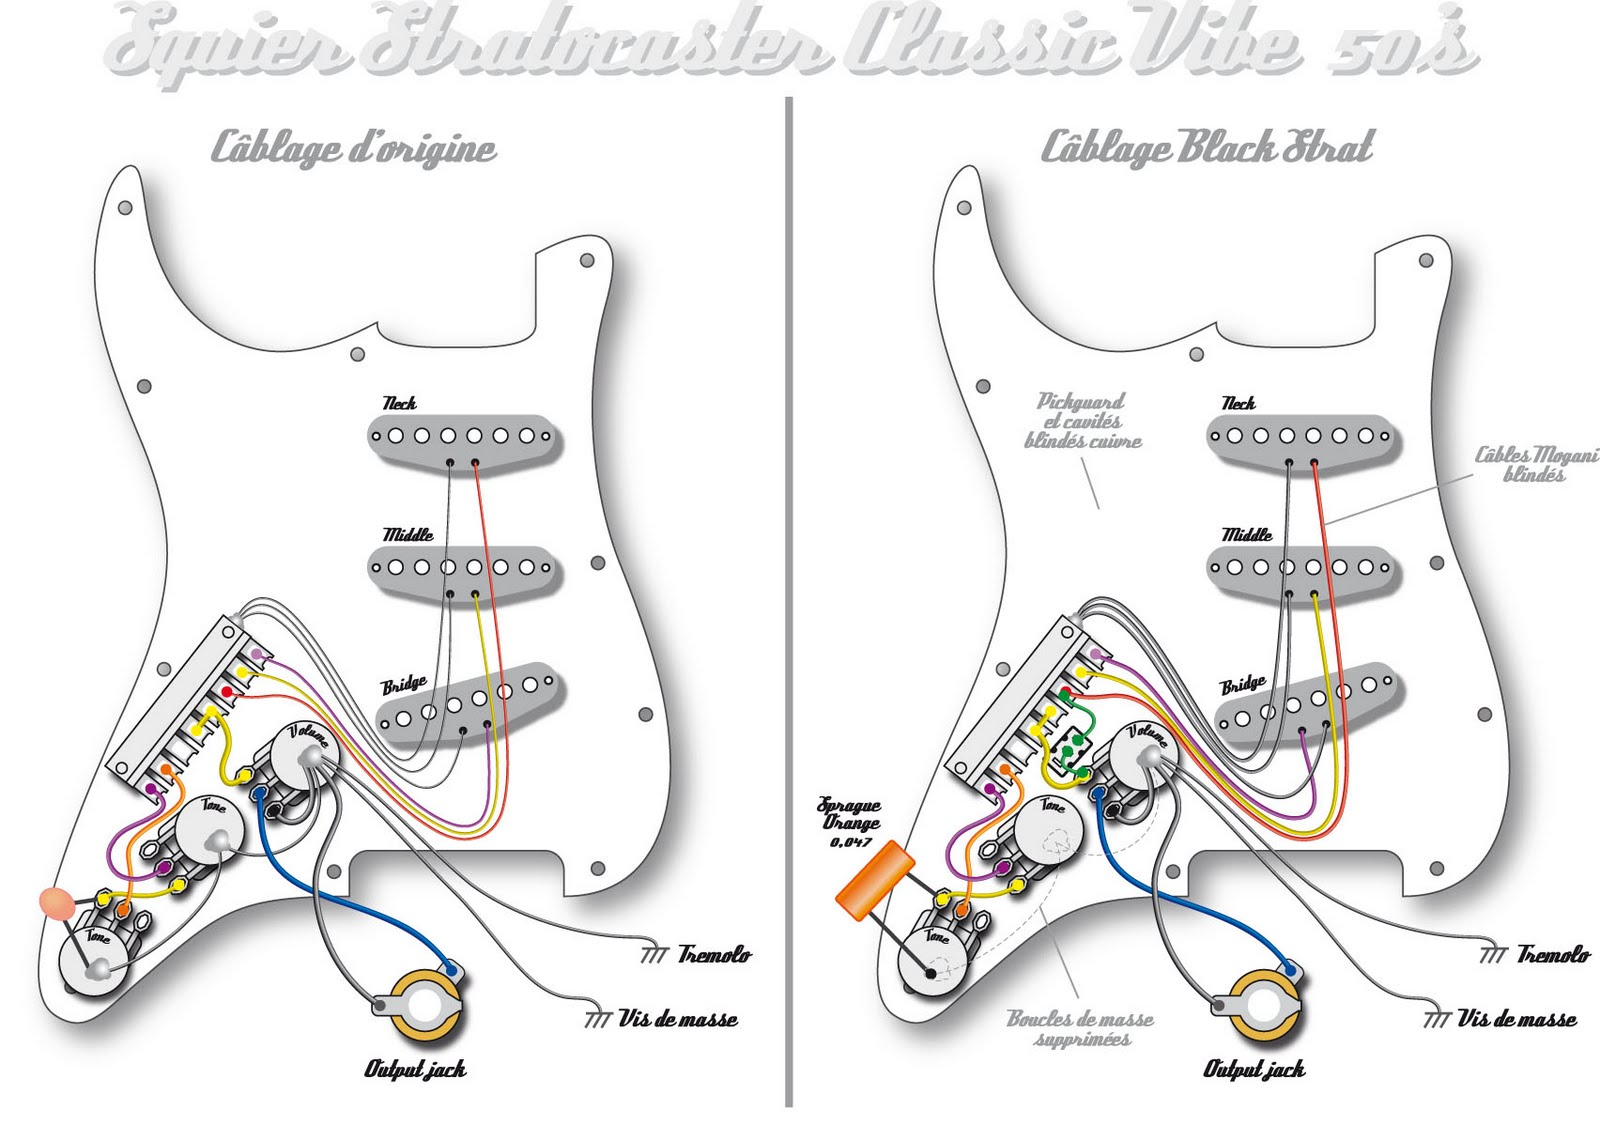 The Black Strat Wiring Diagram : 30 Wiring Diagram Images - Wiring ...